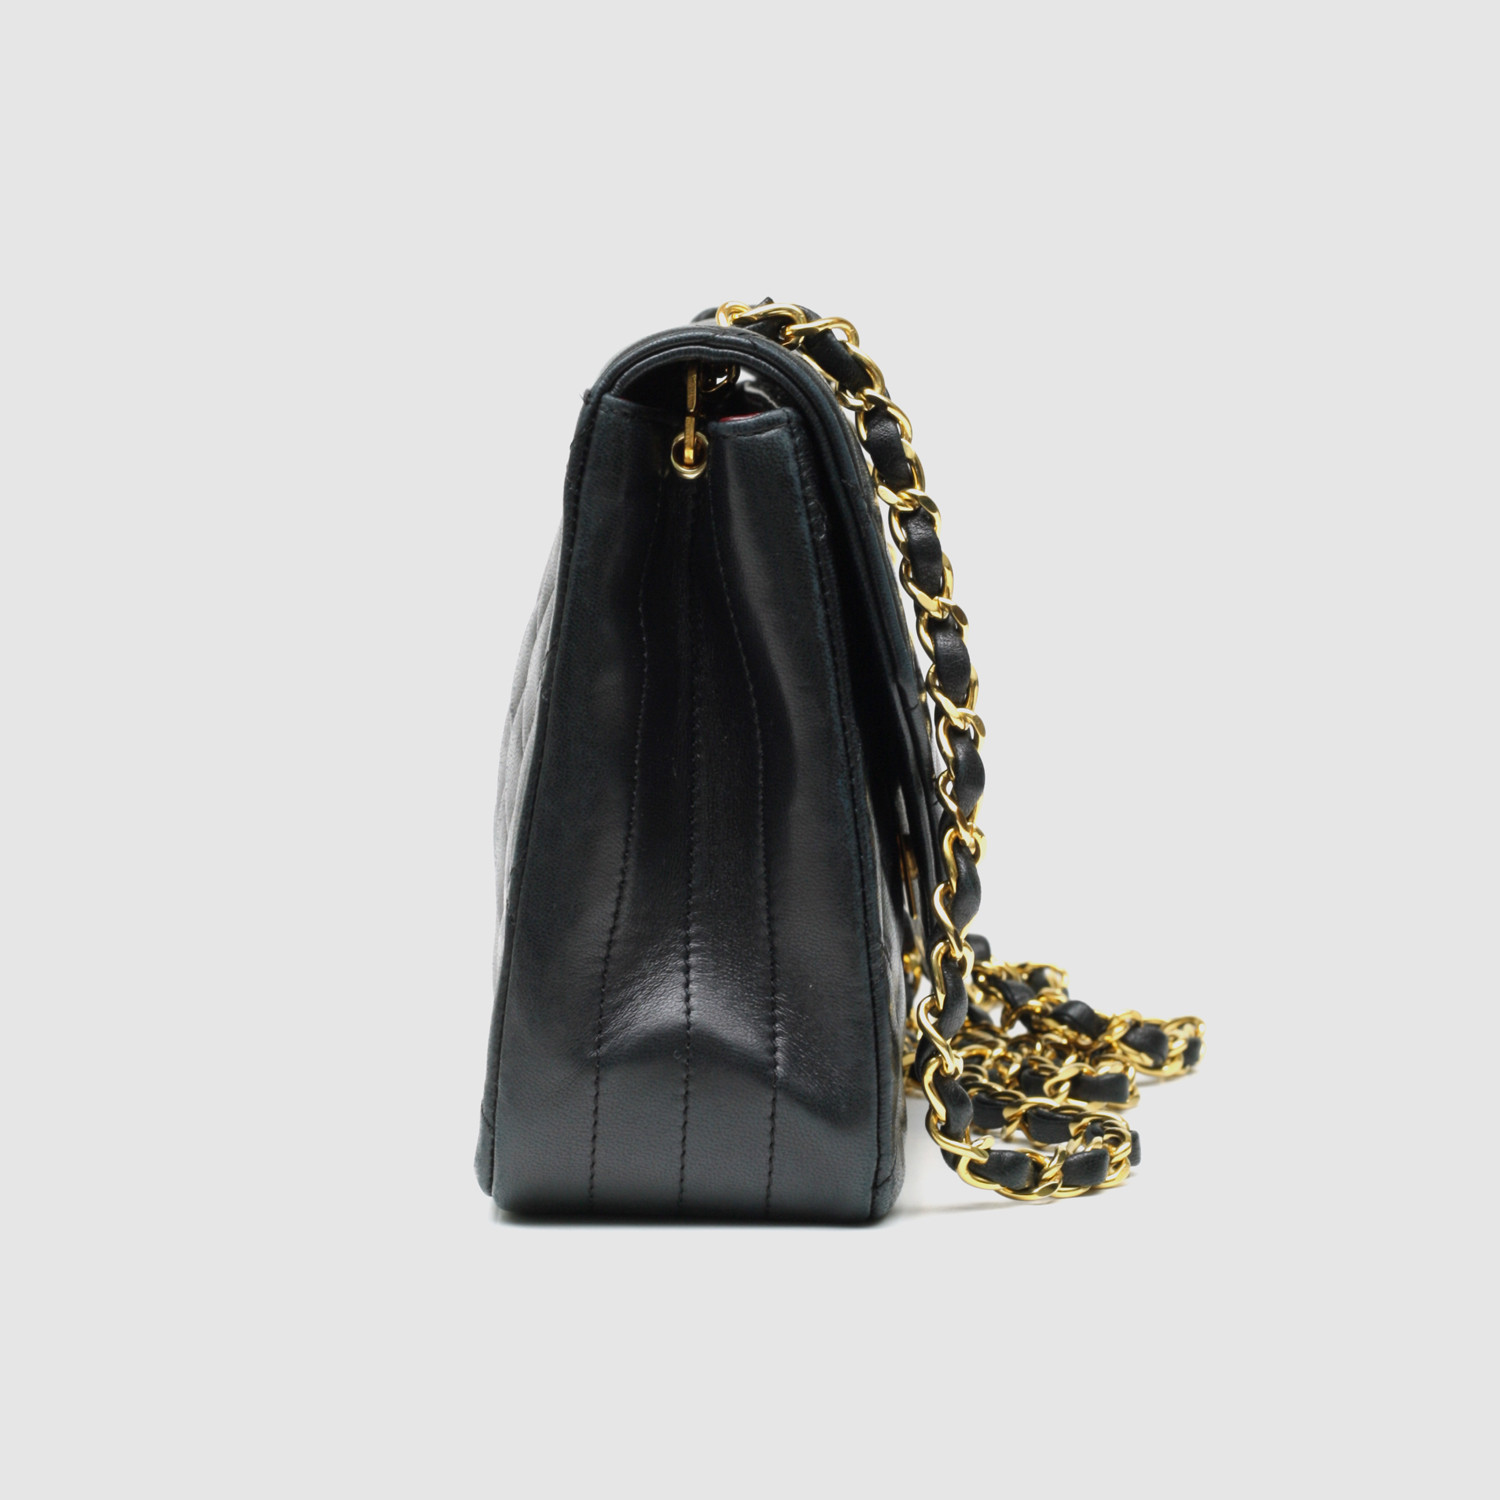 Chanel Small Flap Bag // Black Quilted Lambskin - Vintage Luxury ... : chanel mini quilted bag - Adamdwight.com